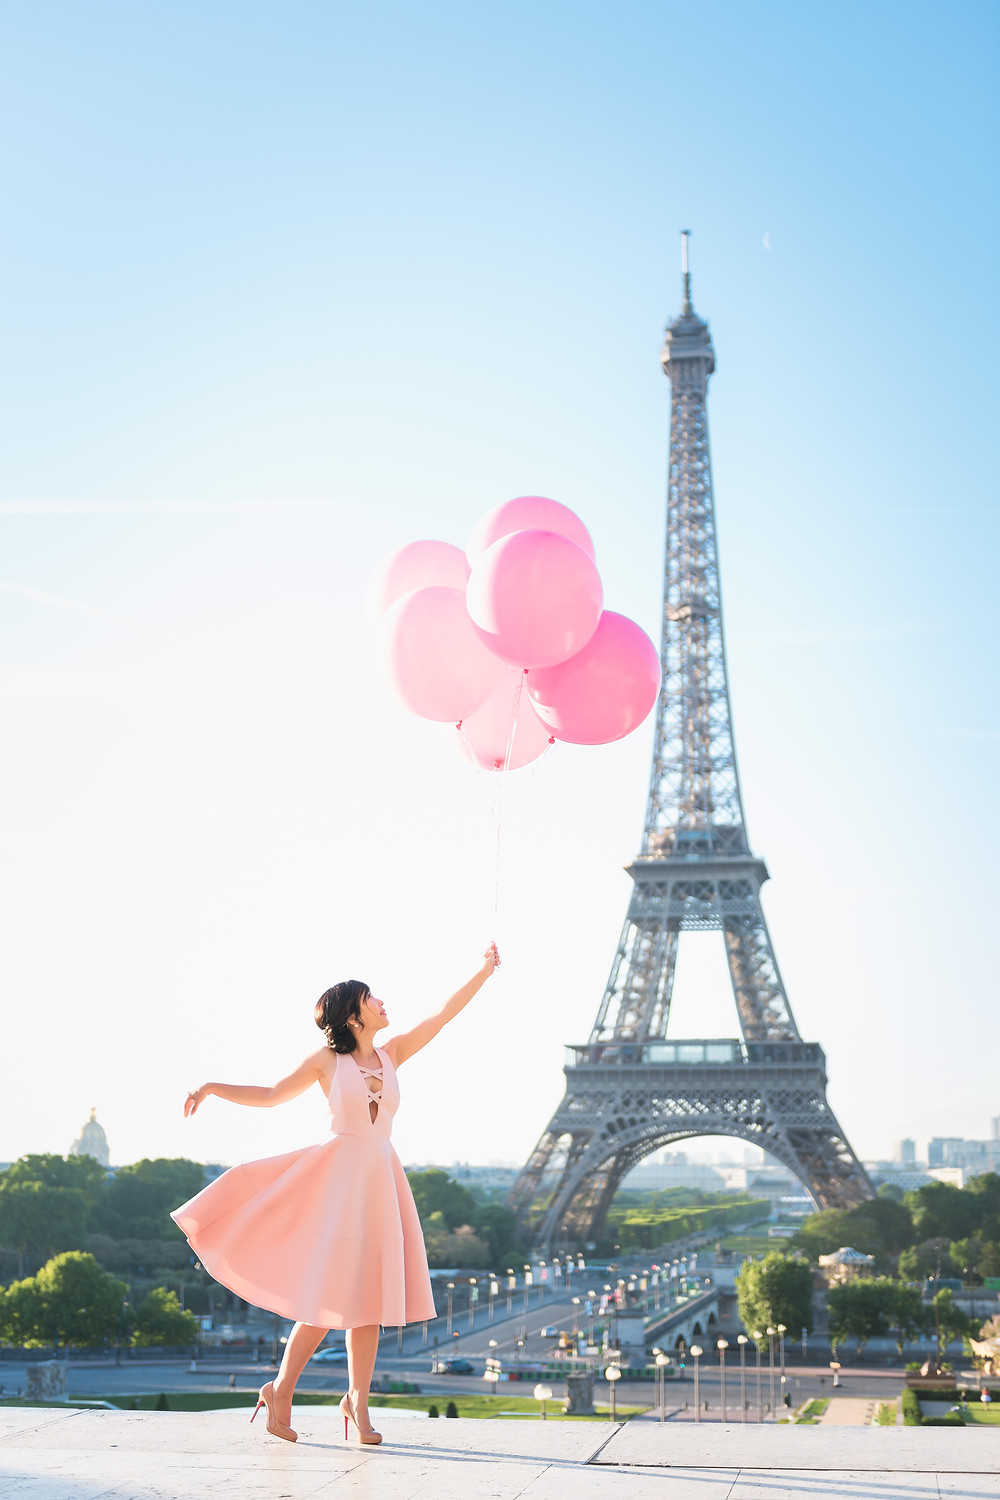 Prewedding in Paris with pink balloons